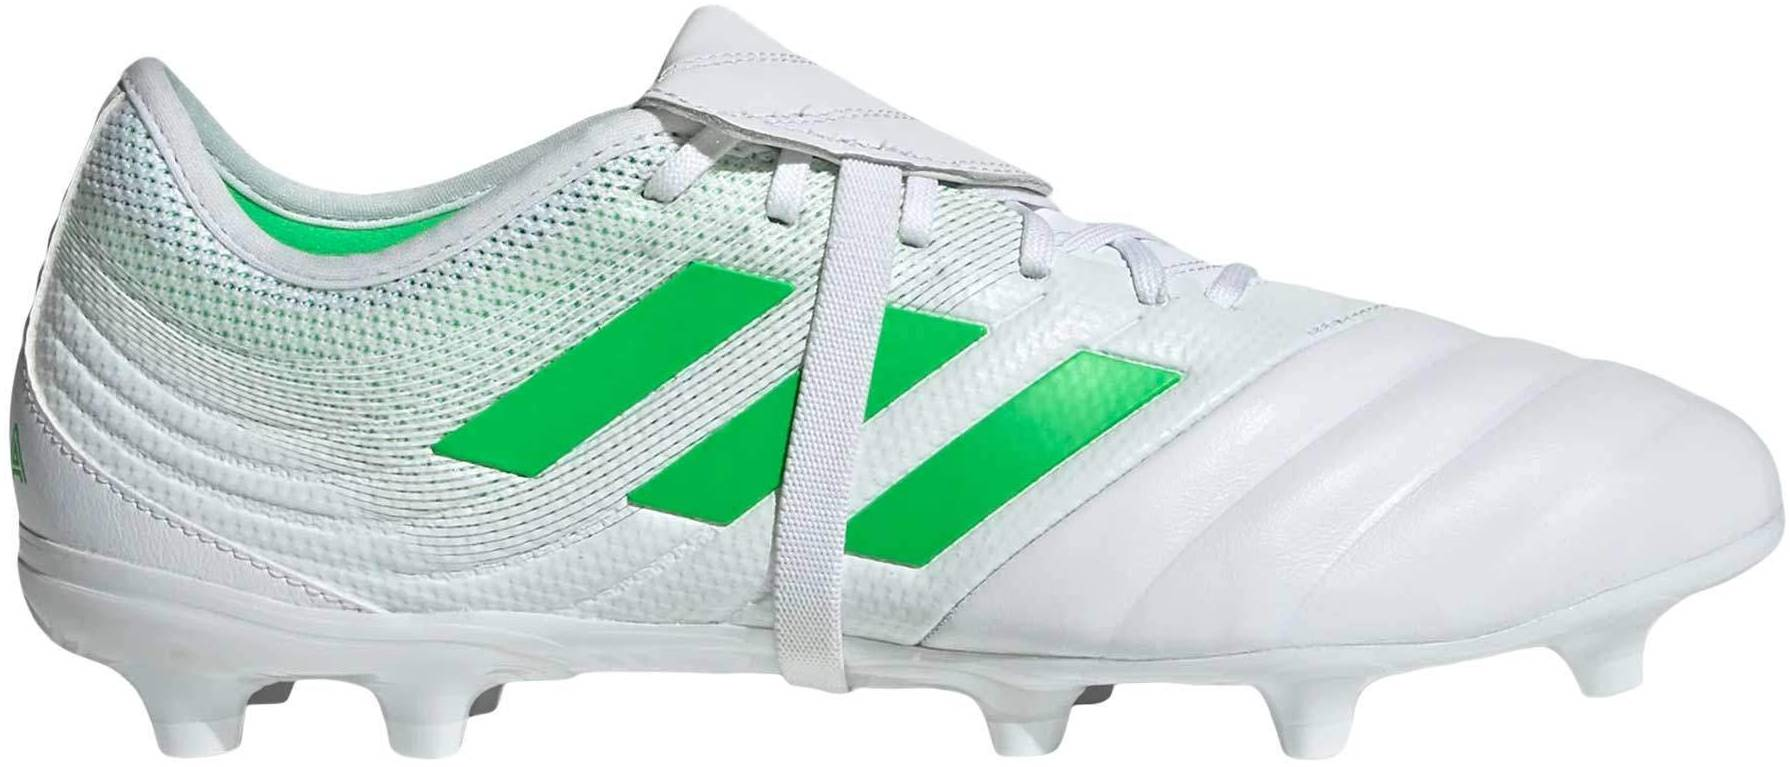 Save 54% on White Soccer Cleats (77